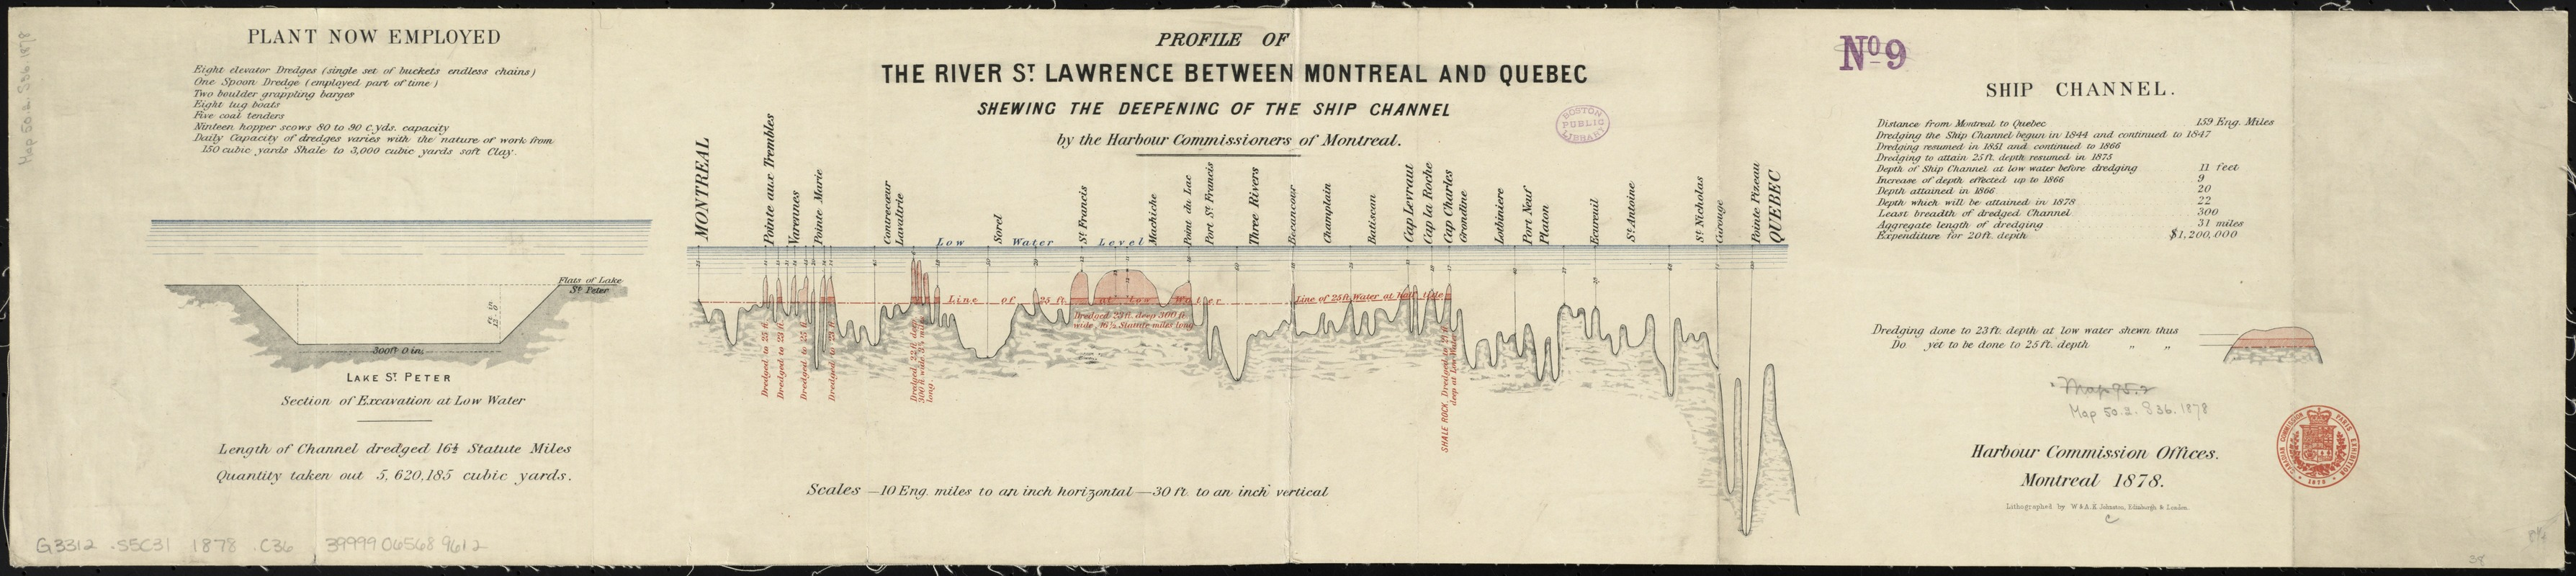 Profile of the river St. Lawrence between Montreal and Quebec shewing the deepening of the ship channel